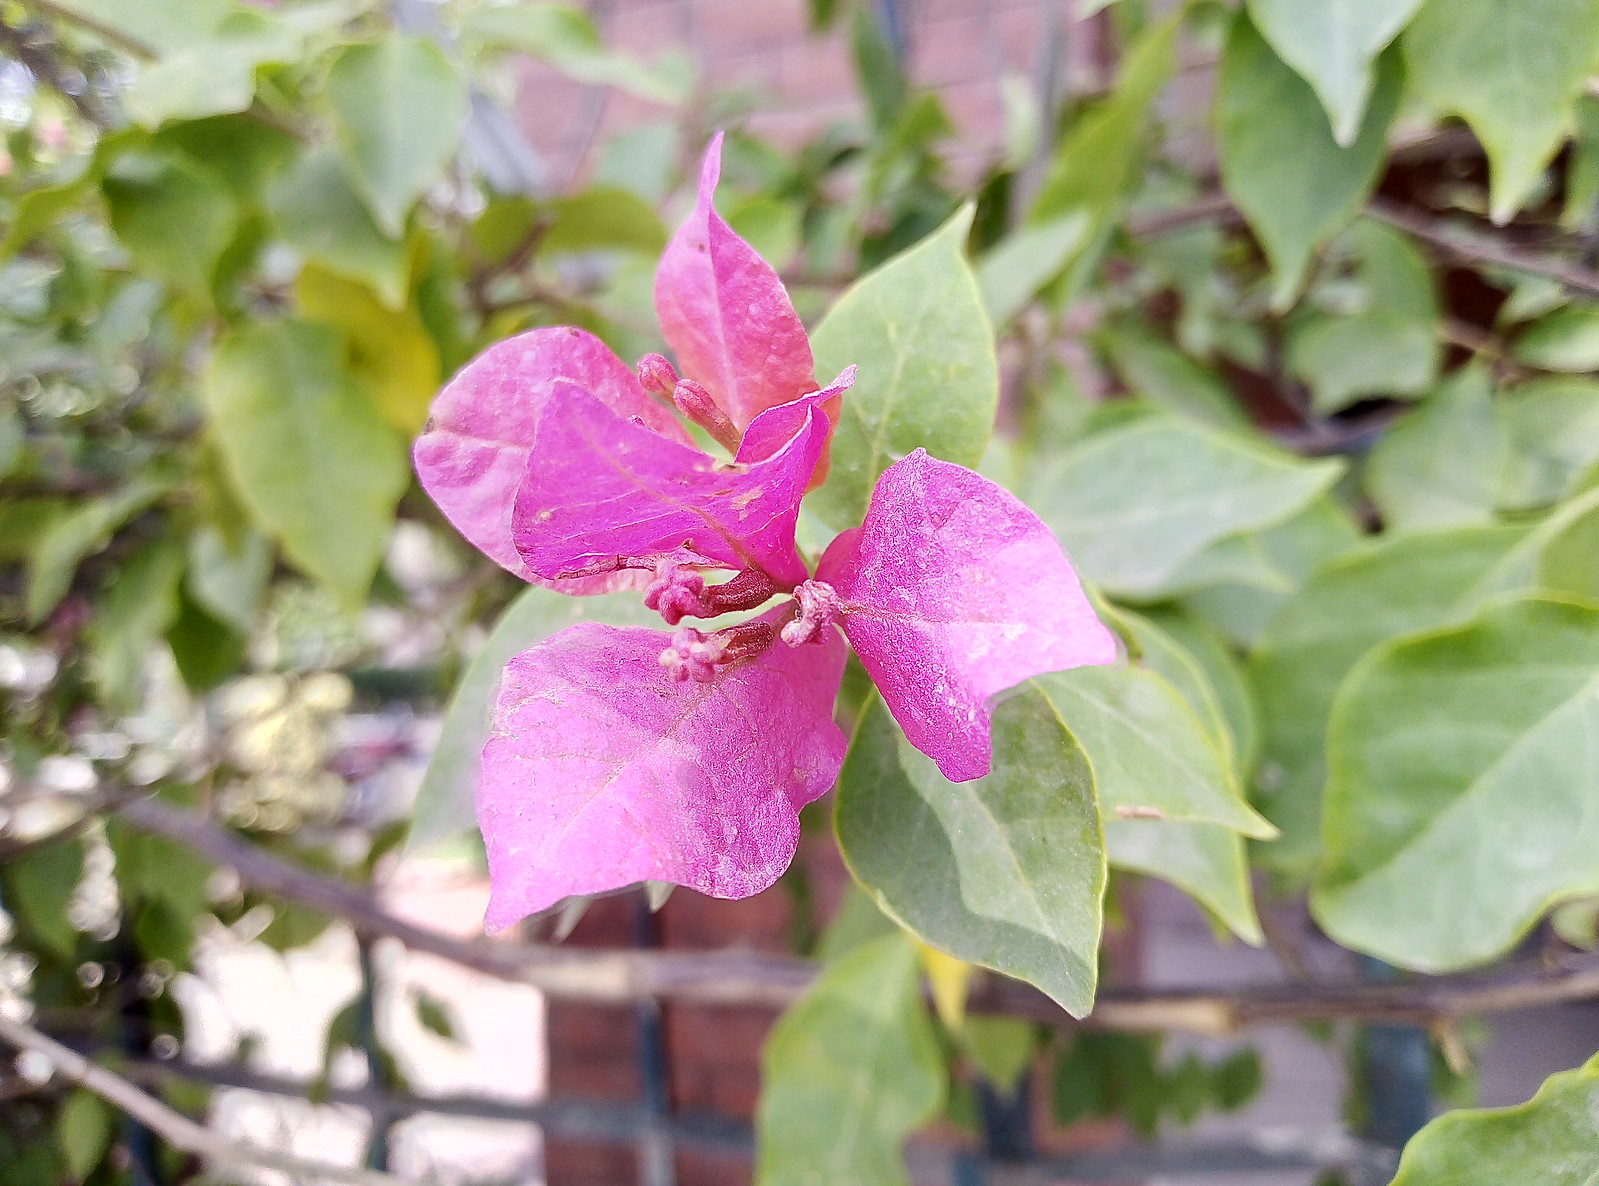 HDR Mode on Huawei Y5 Prime 2018 a